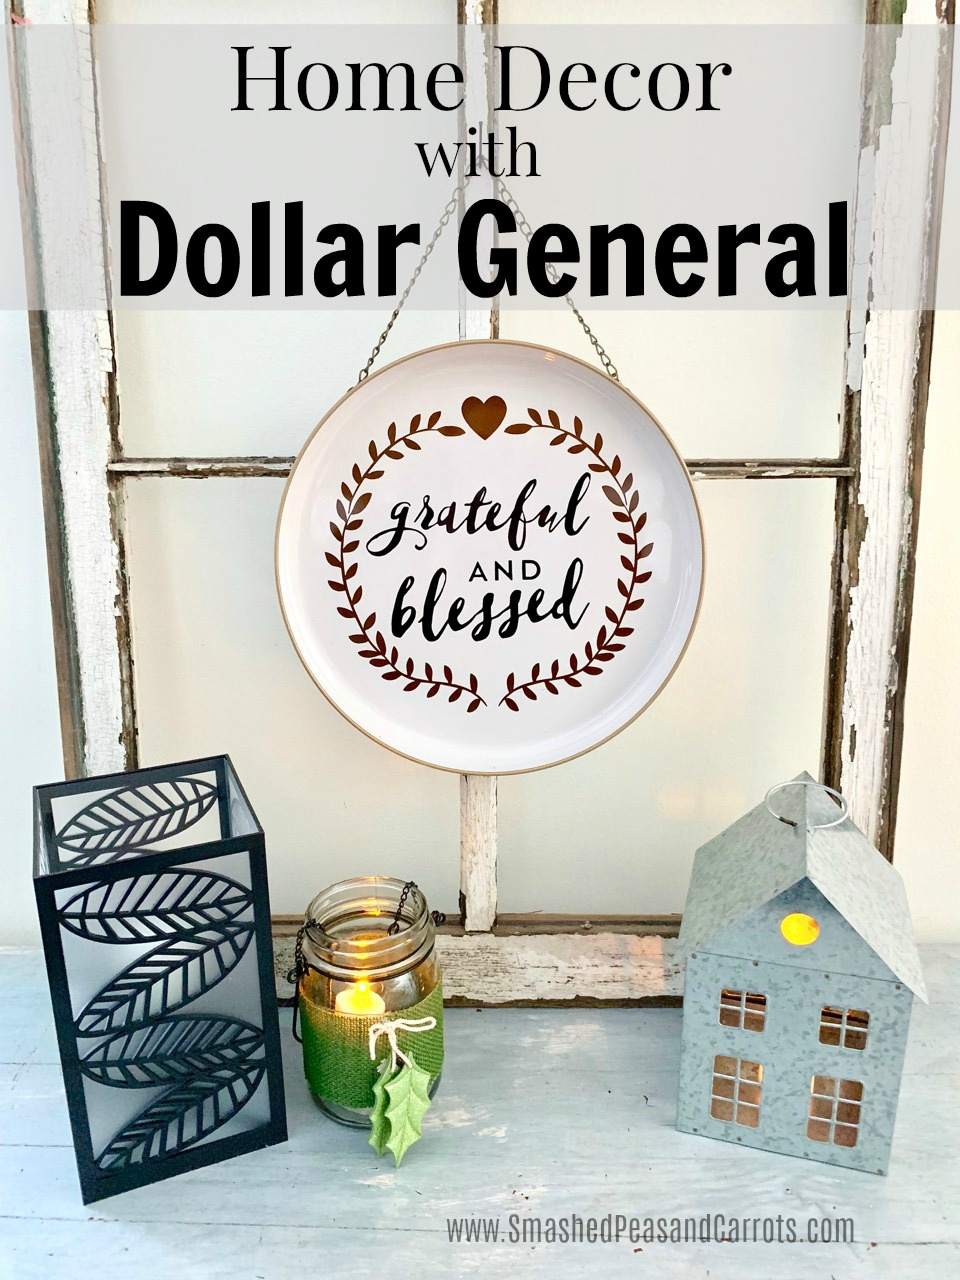 Get Your Home Ready For This Holiday Season By Adding In Some New Decor From Dollar General Where You Can Quality Goods At A Great Price